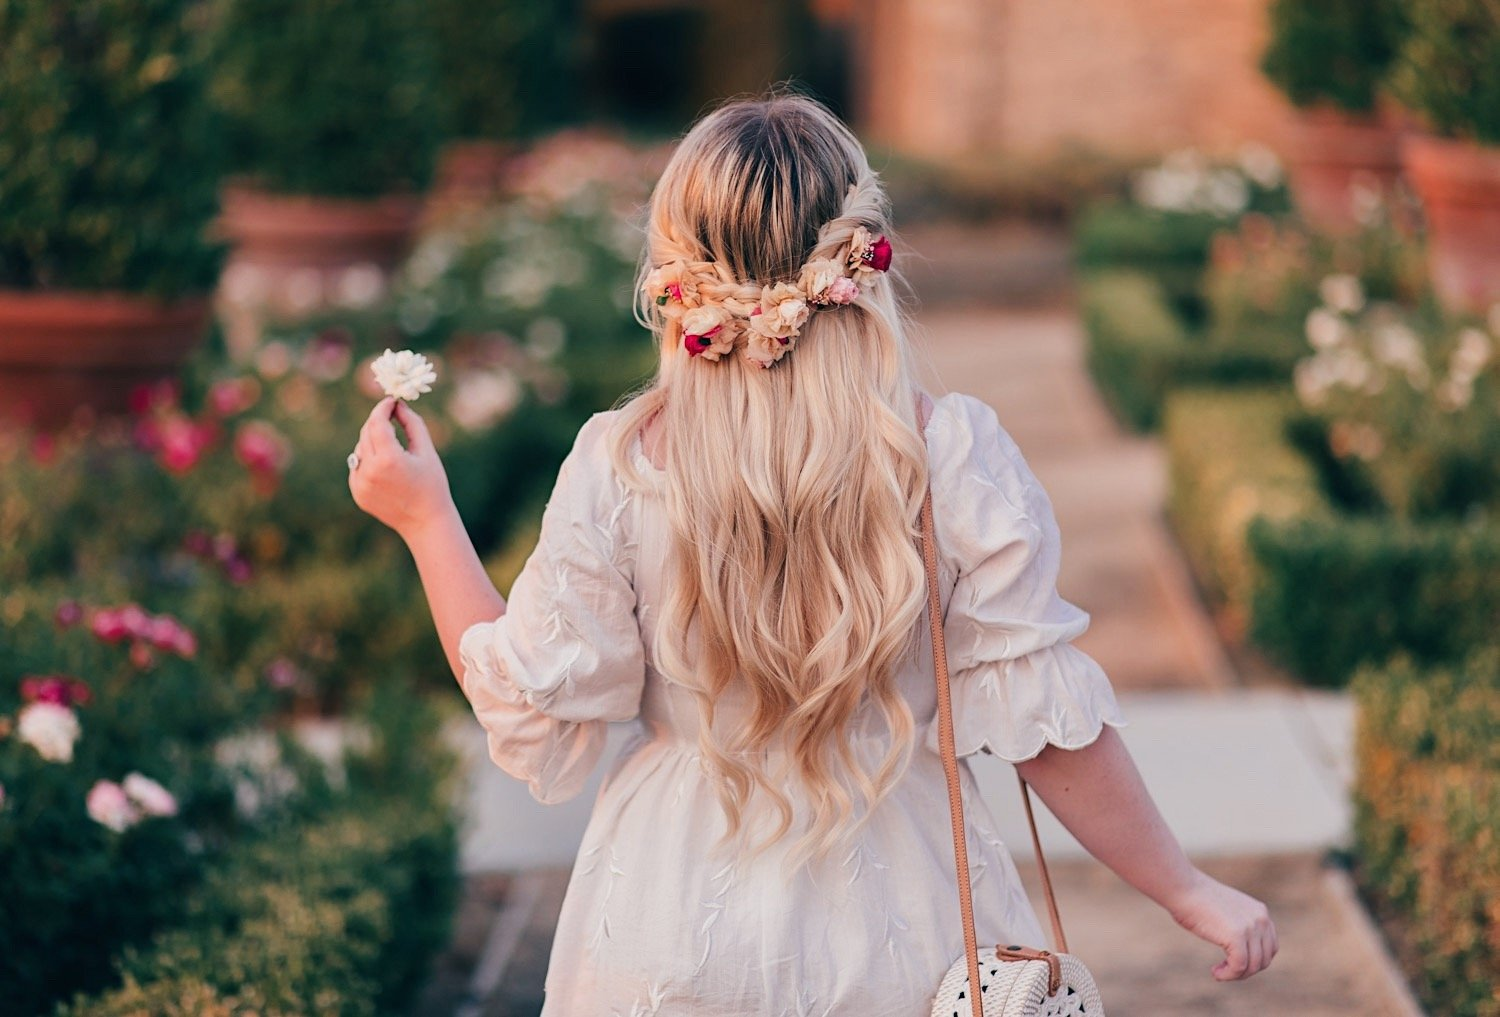 Pinterest Inspired Boho Braid with Flowers